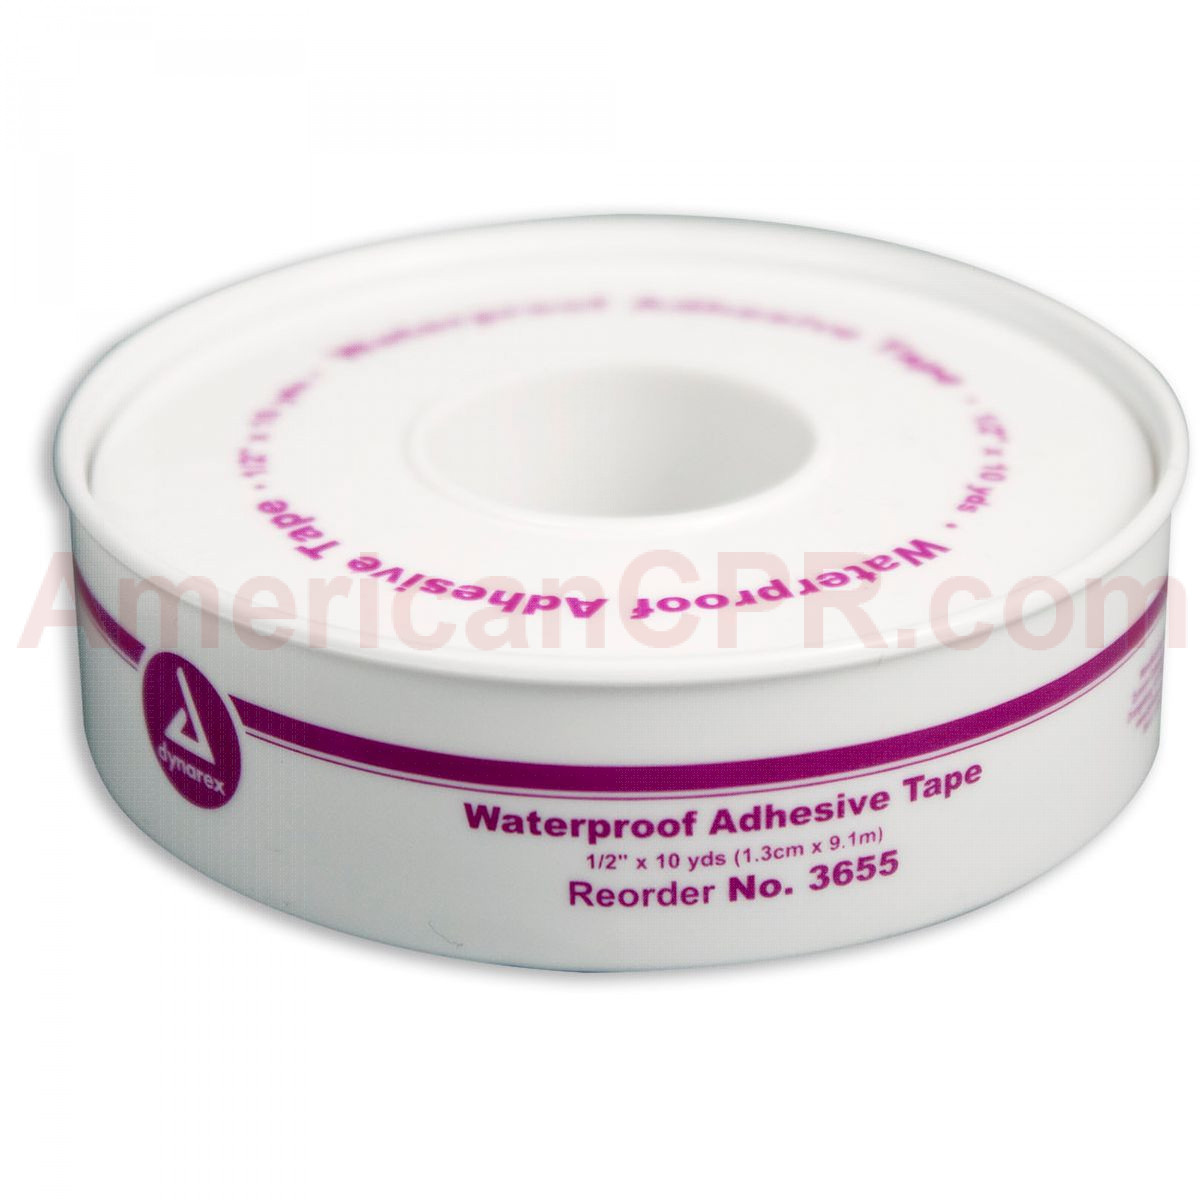 "1/2"" x 10 yd. Waterproof Tape - Plastic Spool - 1 Each - Dynarex"